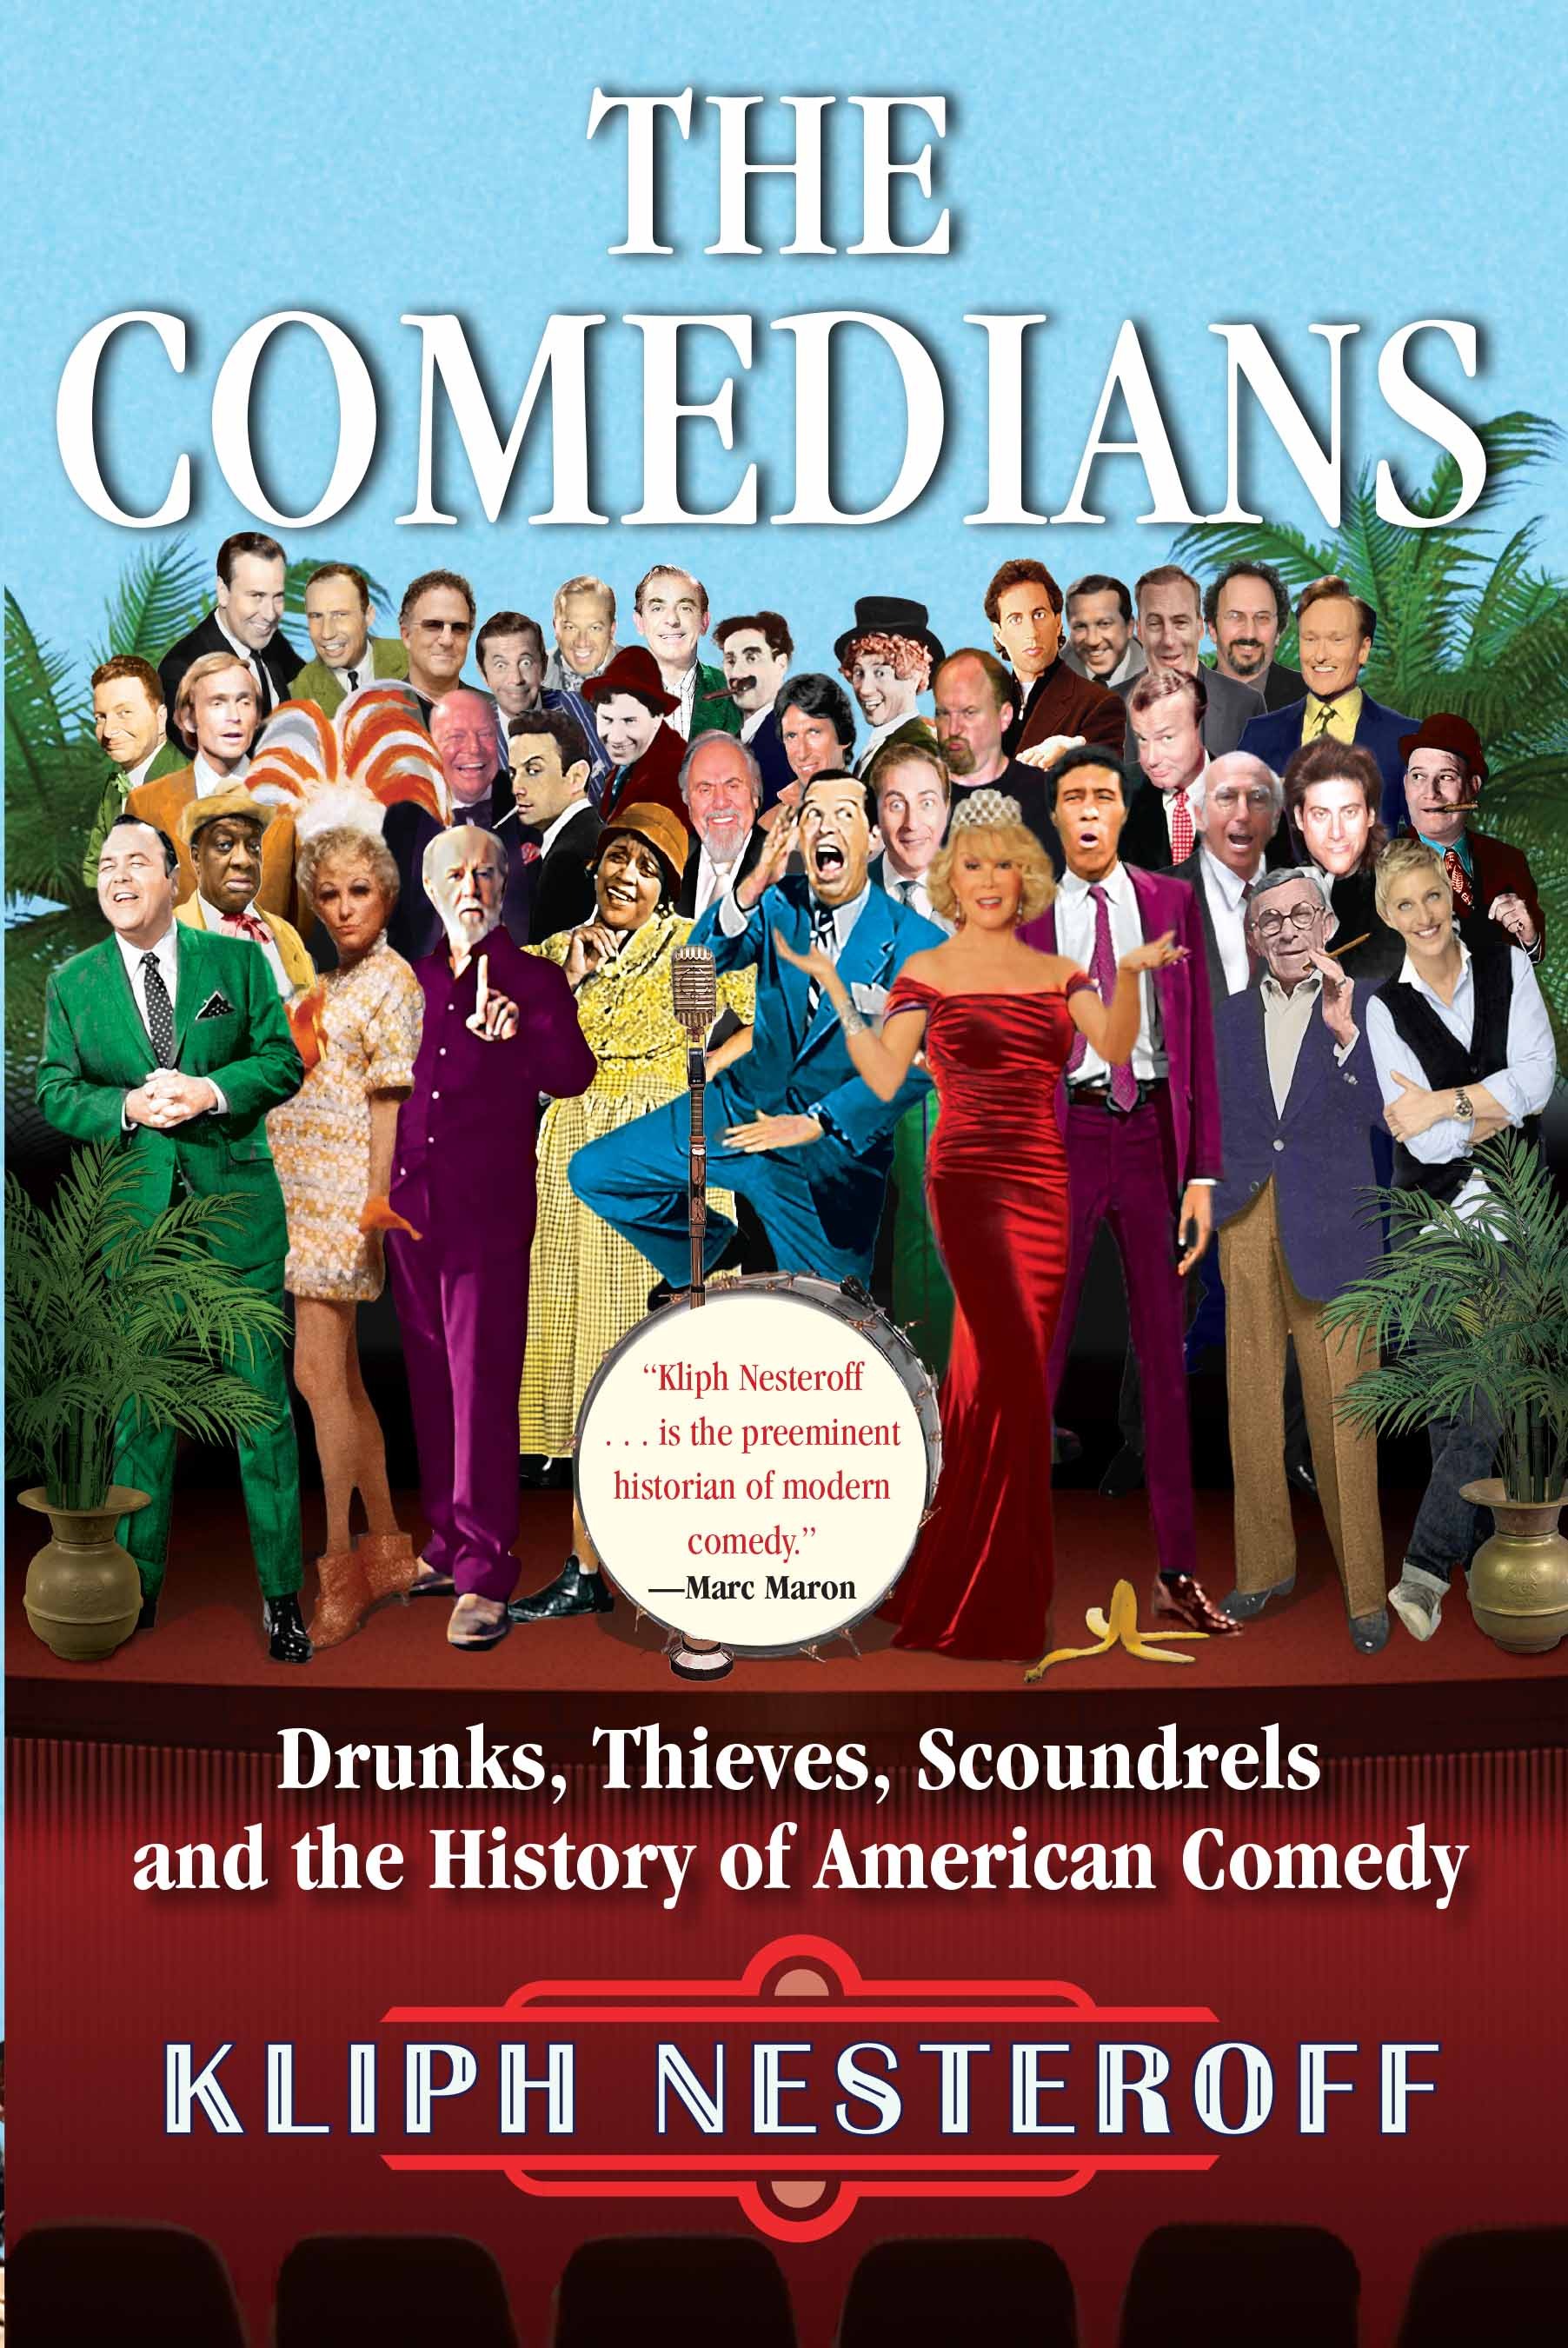 The Comedians, Kliph Nesteroff - I think you'd enjoy this book even if you don't identify as comedian.Mr. Nesteroff produces a salient story of the history of American comedy from the Vaudeville days to radio, through the early nightclubs (think the Copacabana), to Las Vegas and to today.He merges firsthand interviews with historical sources and comes out with a story that, I hope, gives you an informed perspective on comedy's roots.That all sounds terribly dry.But it's not.It's entertaining! [Which I never thought I'd say about a history book.]